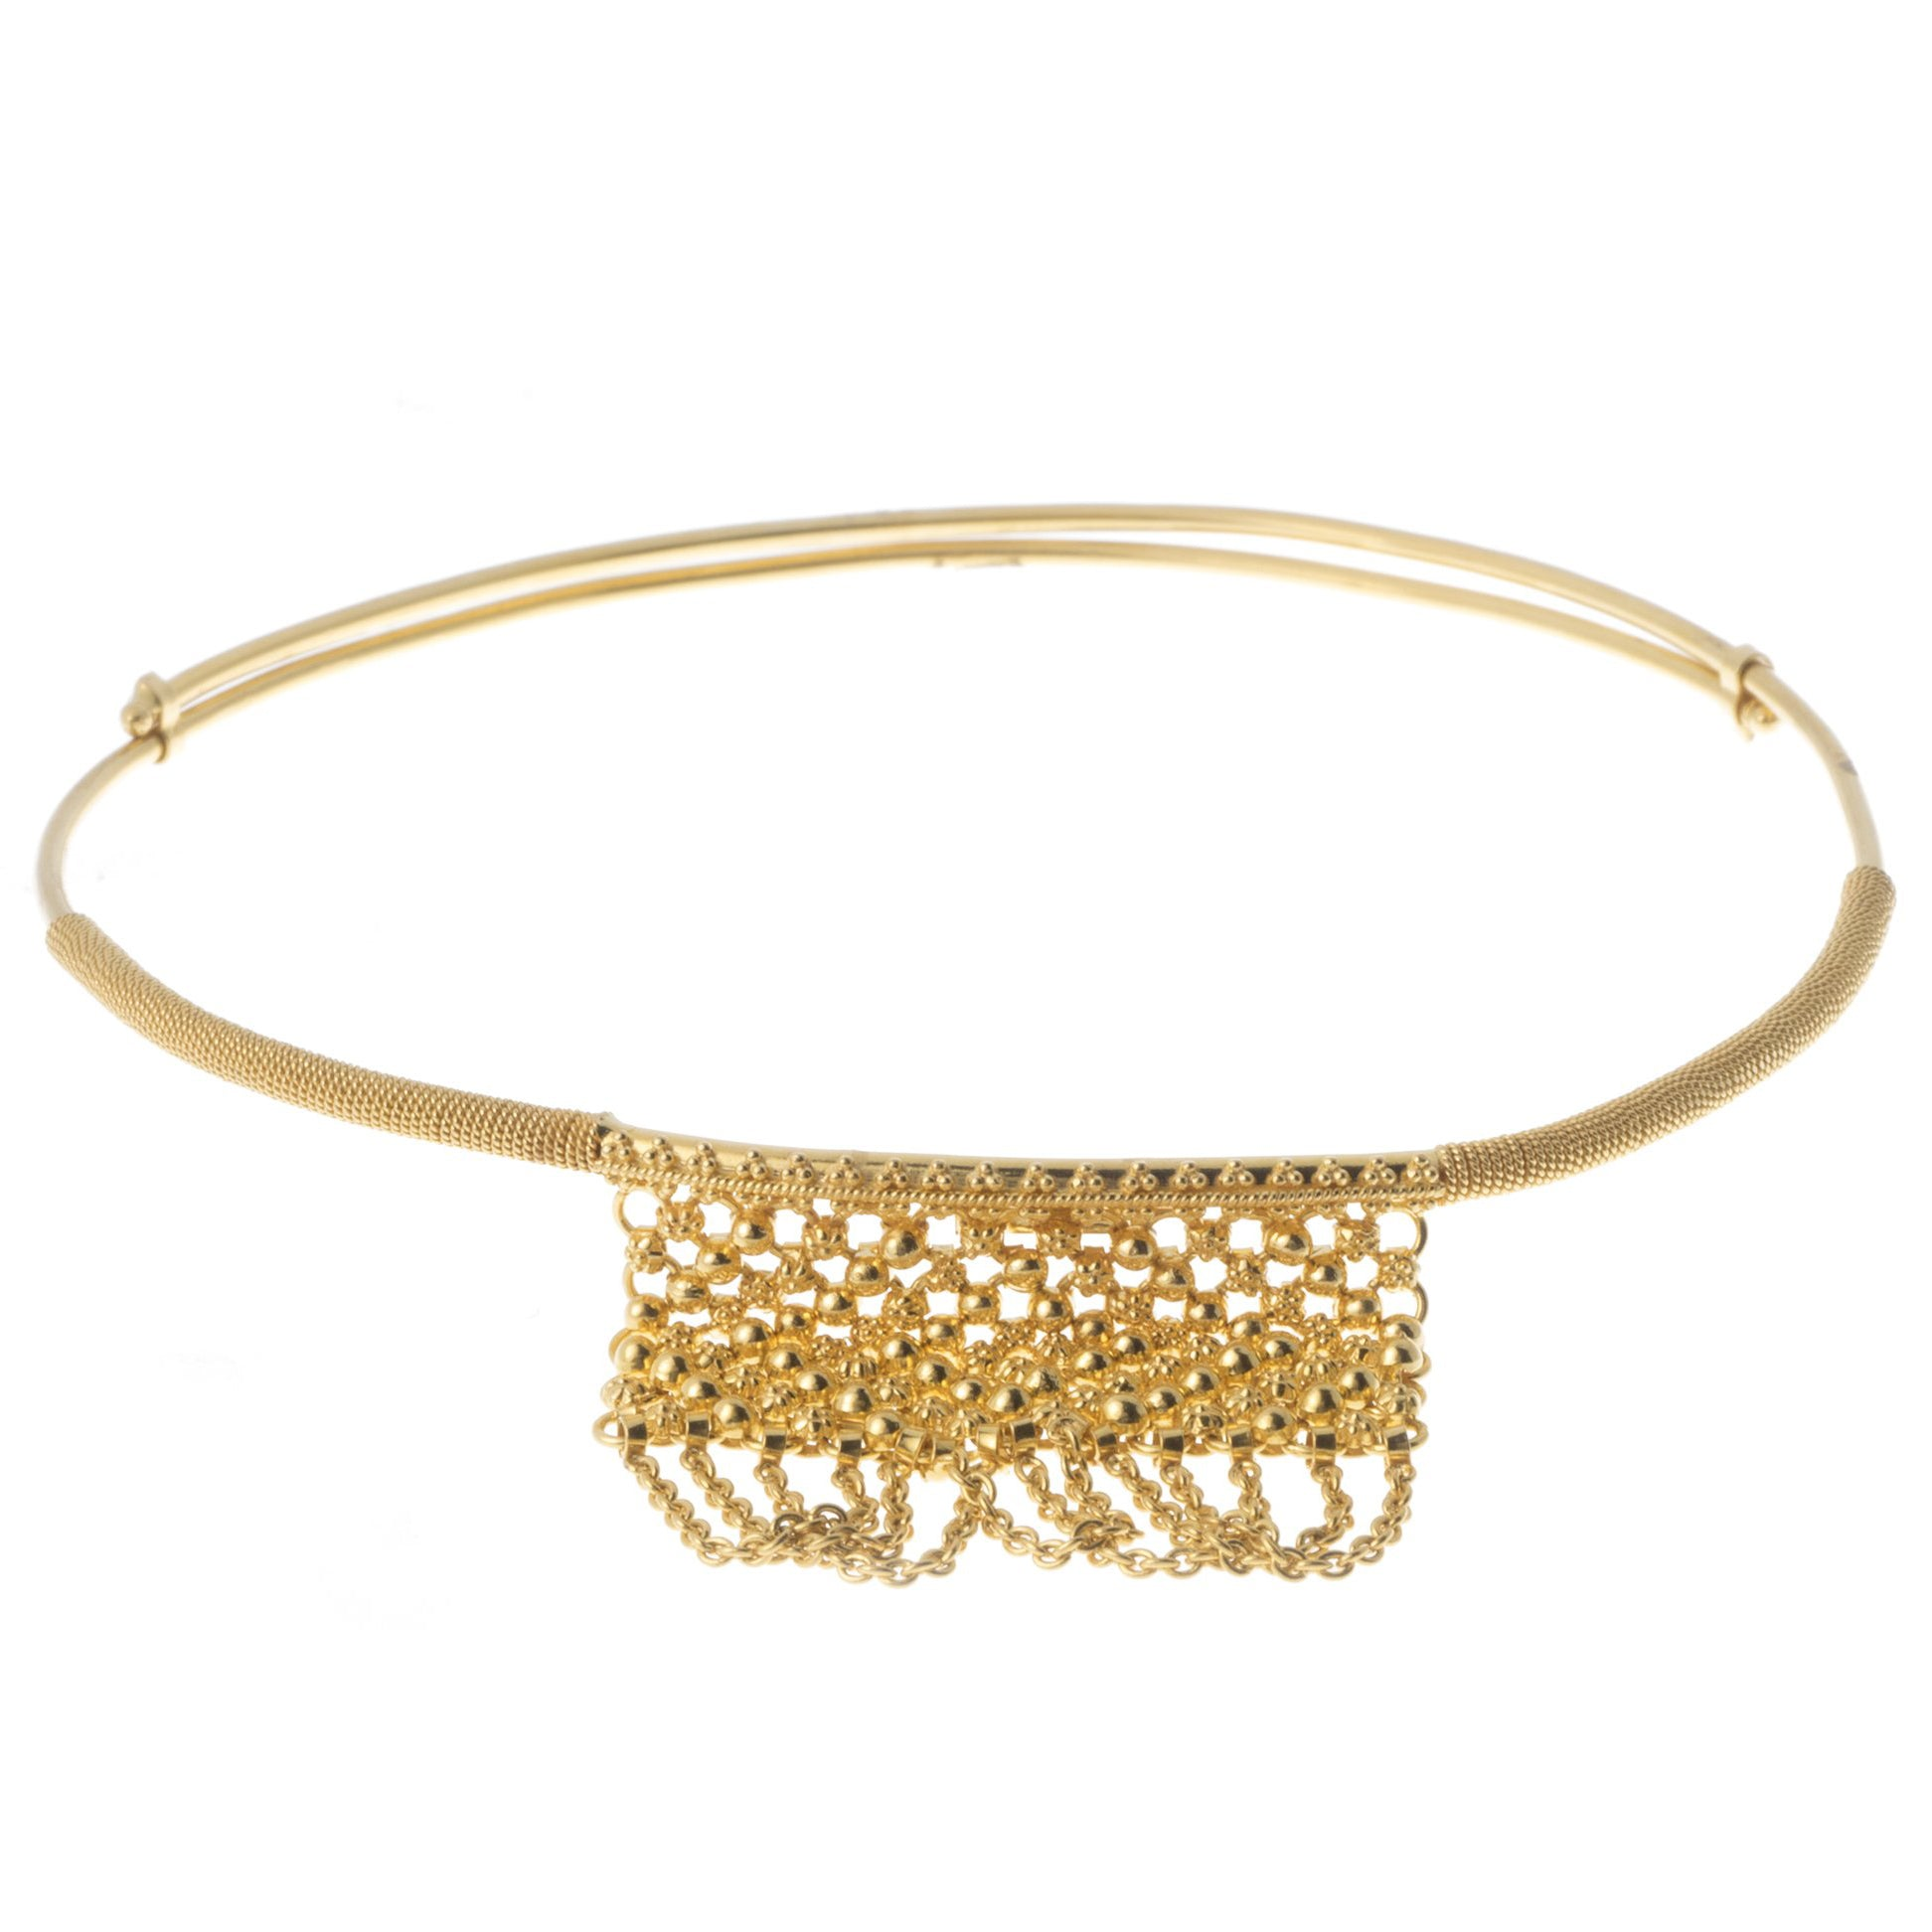 22ct Gold Adjustable Armlet with Filigree Design (22.1g) AR-6996